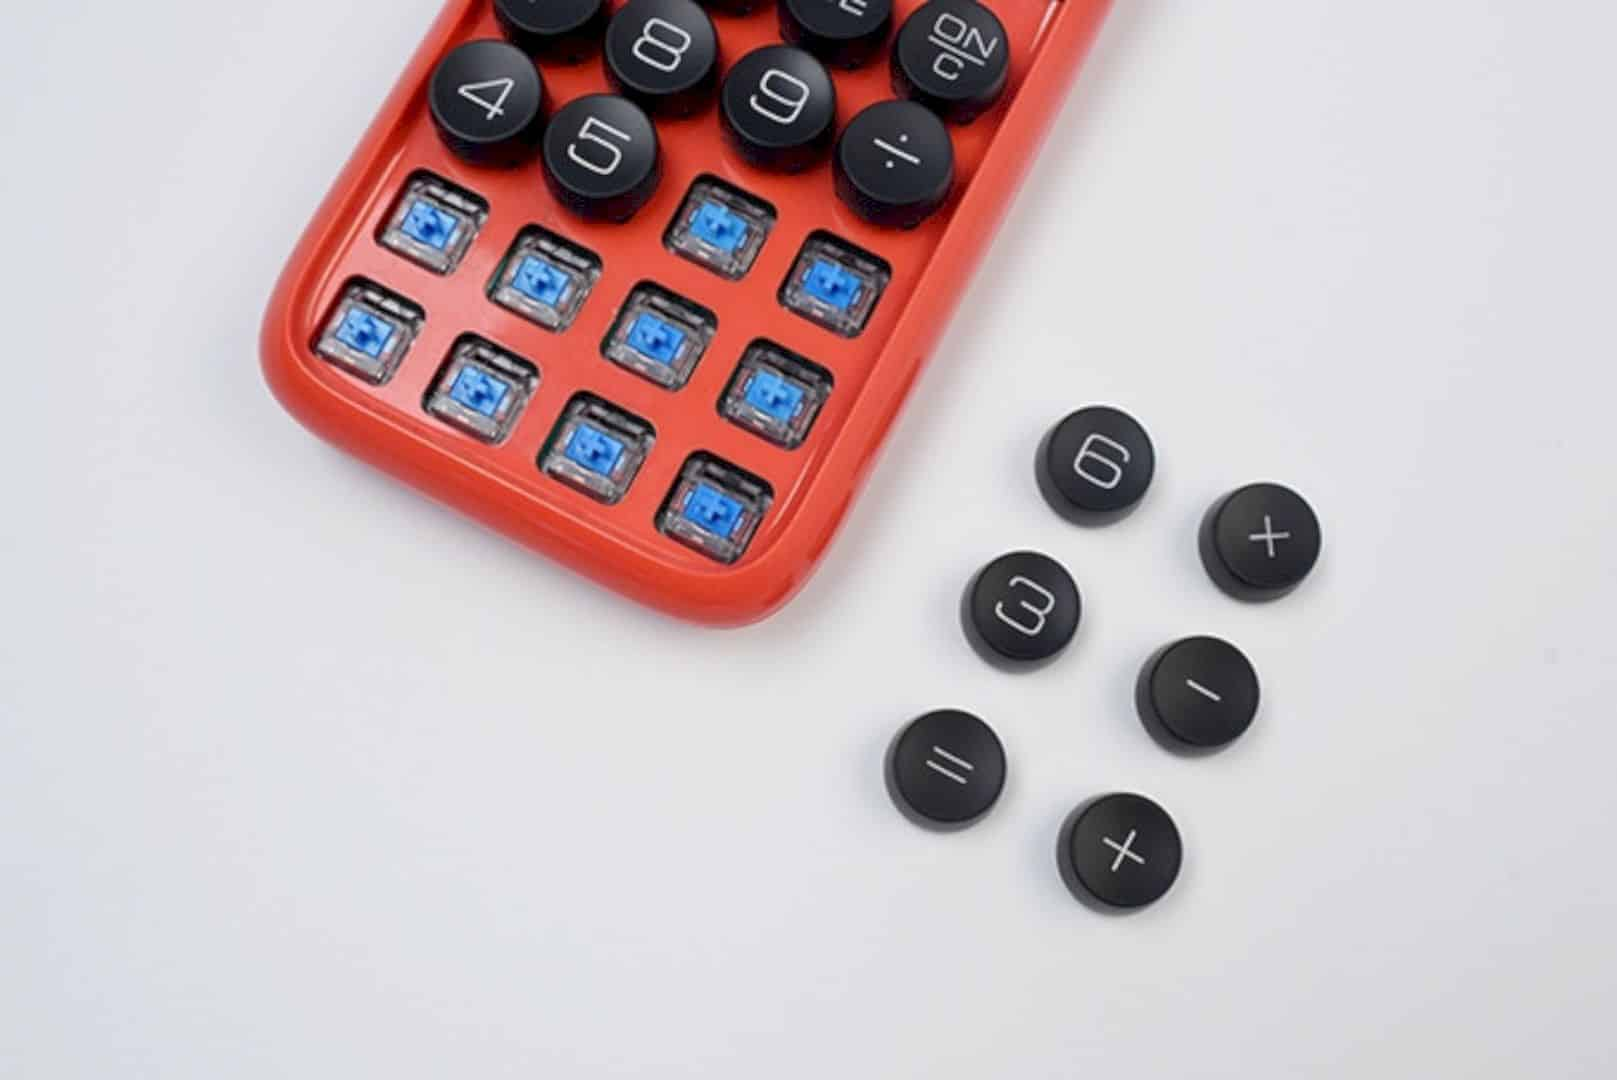 Lofree Digit Calculator: The 1st Retro Mechanical Calculator